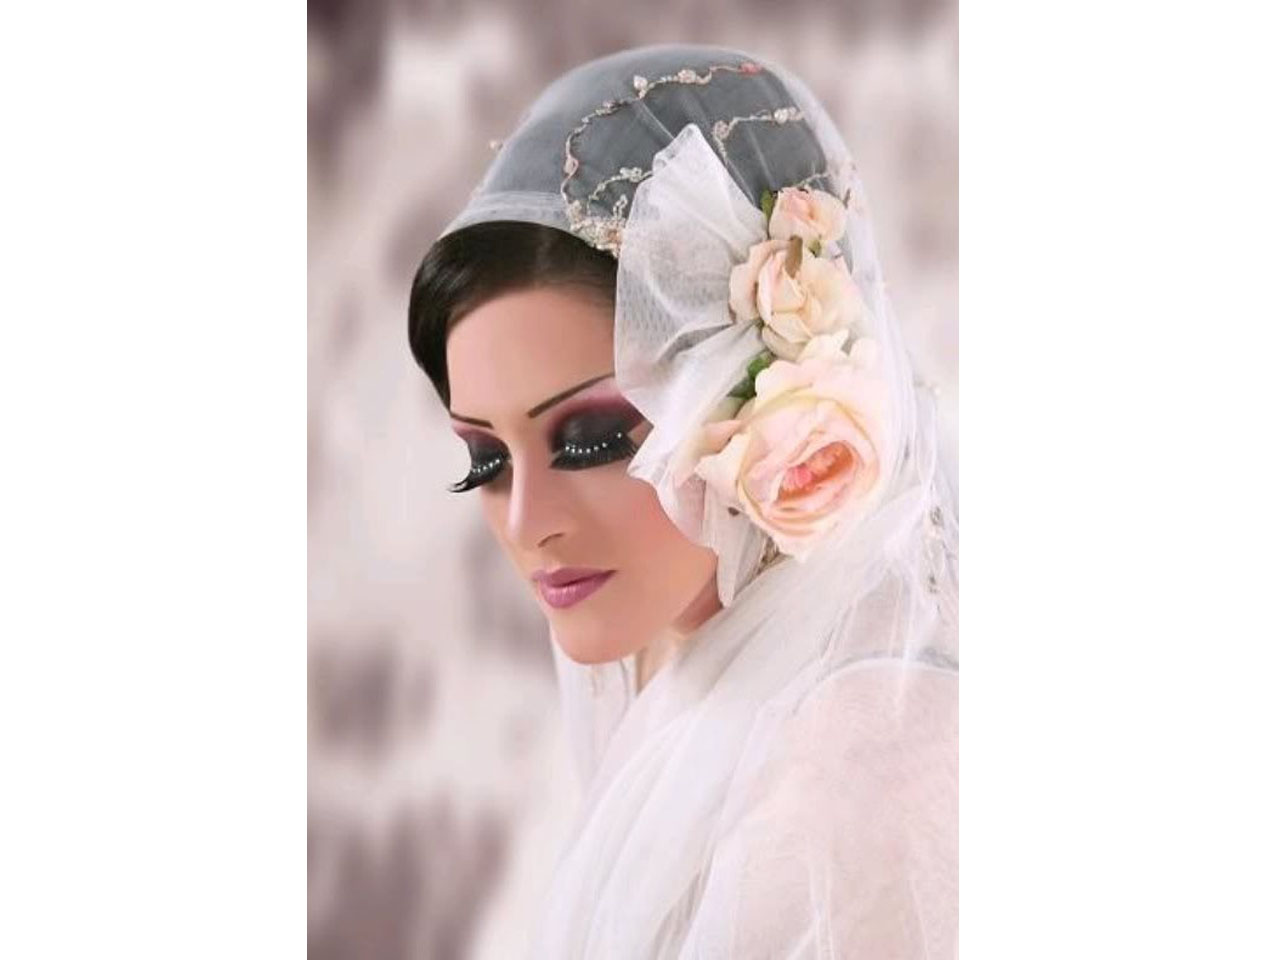 Arabic Bridal-Make Up